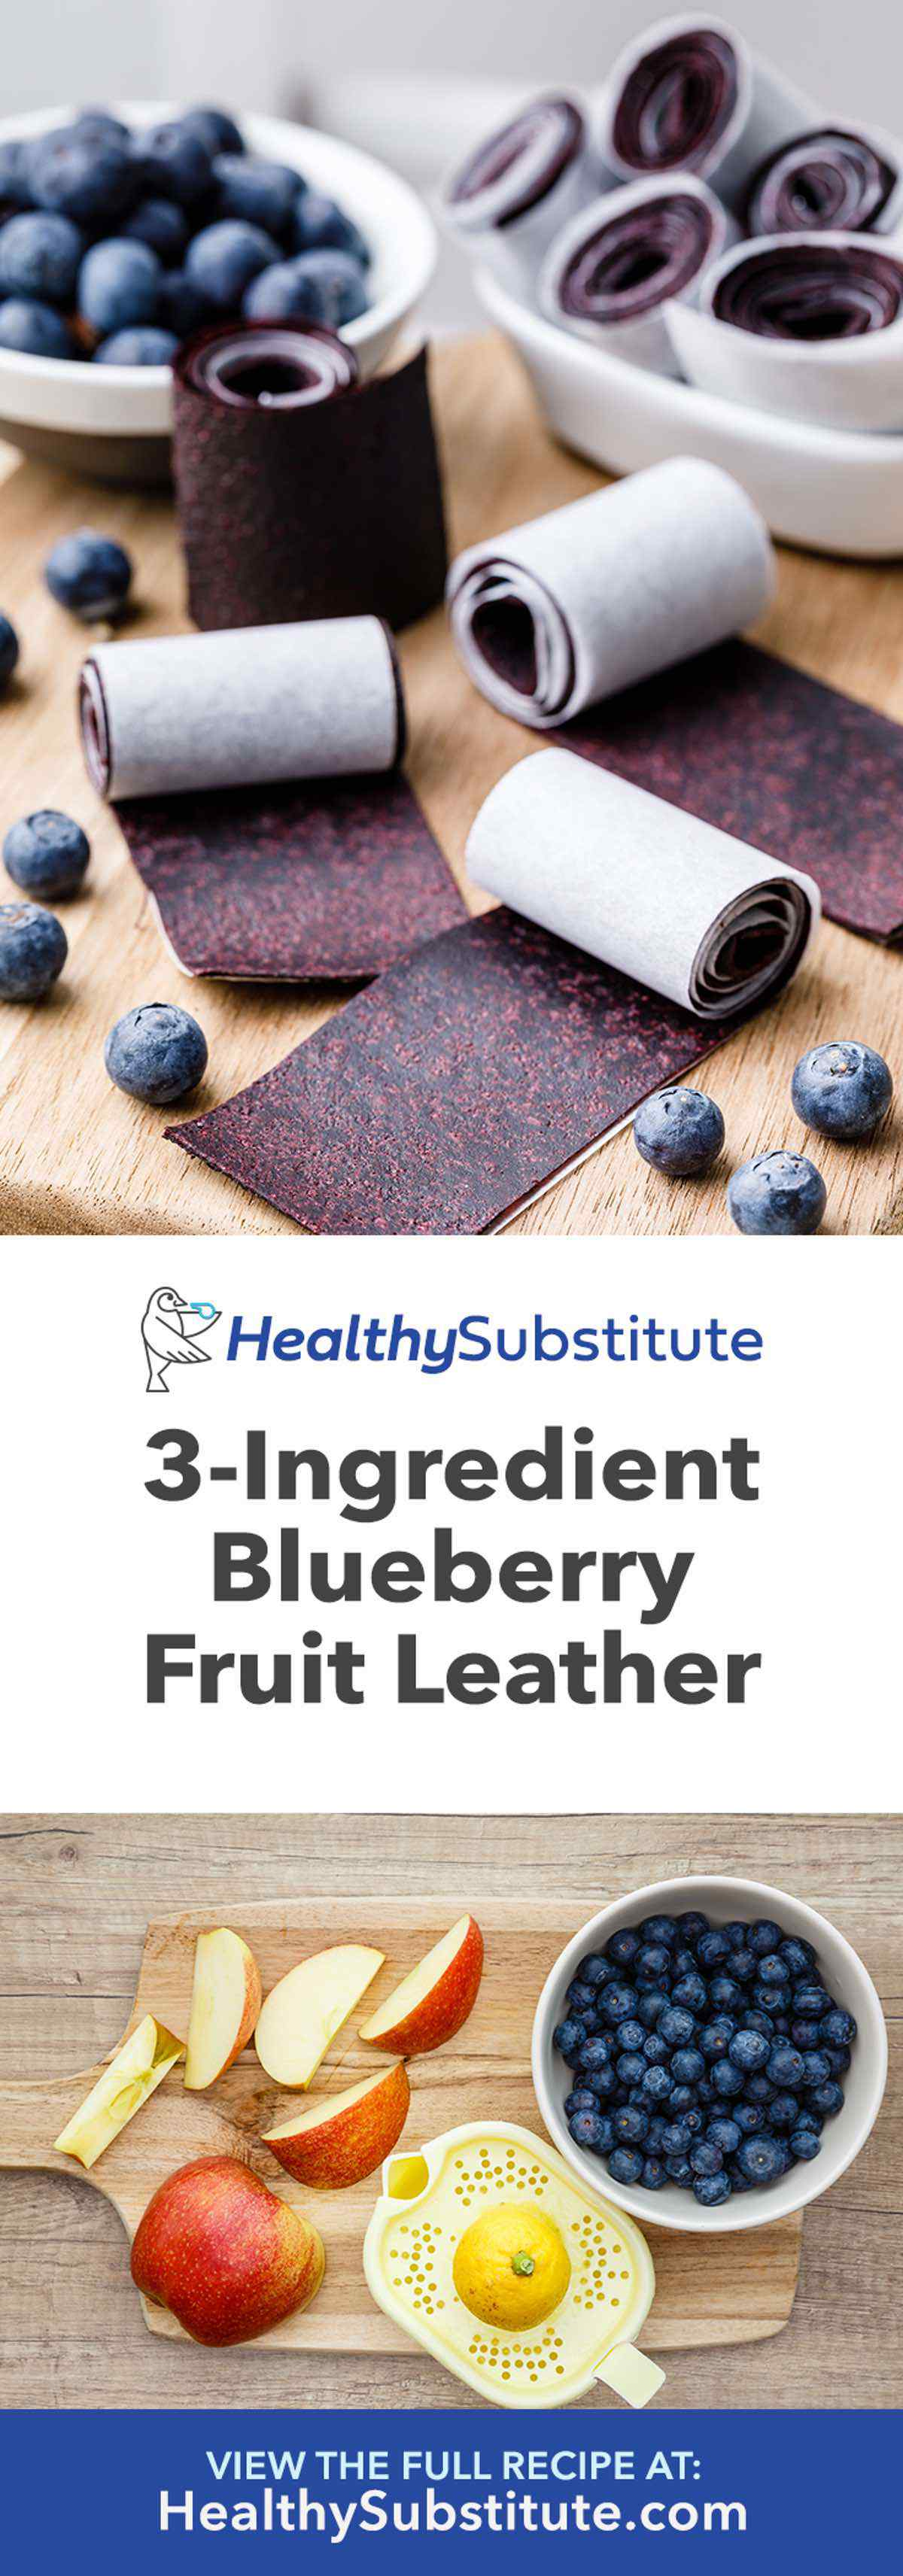 Ridiculously Good 3-Ingredient Blueberry Fruit Leather - Healthy Substitute